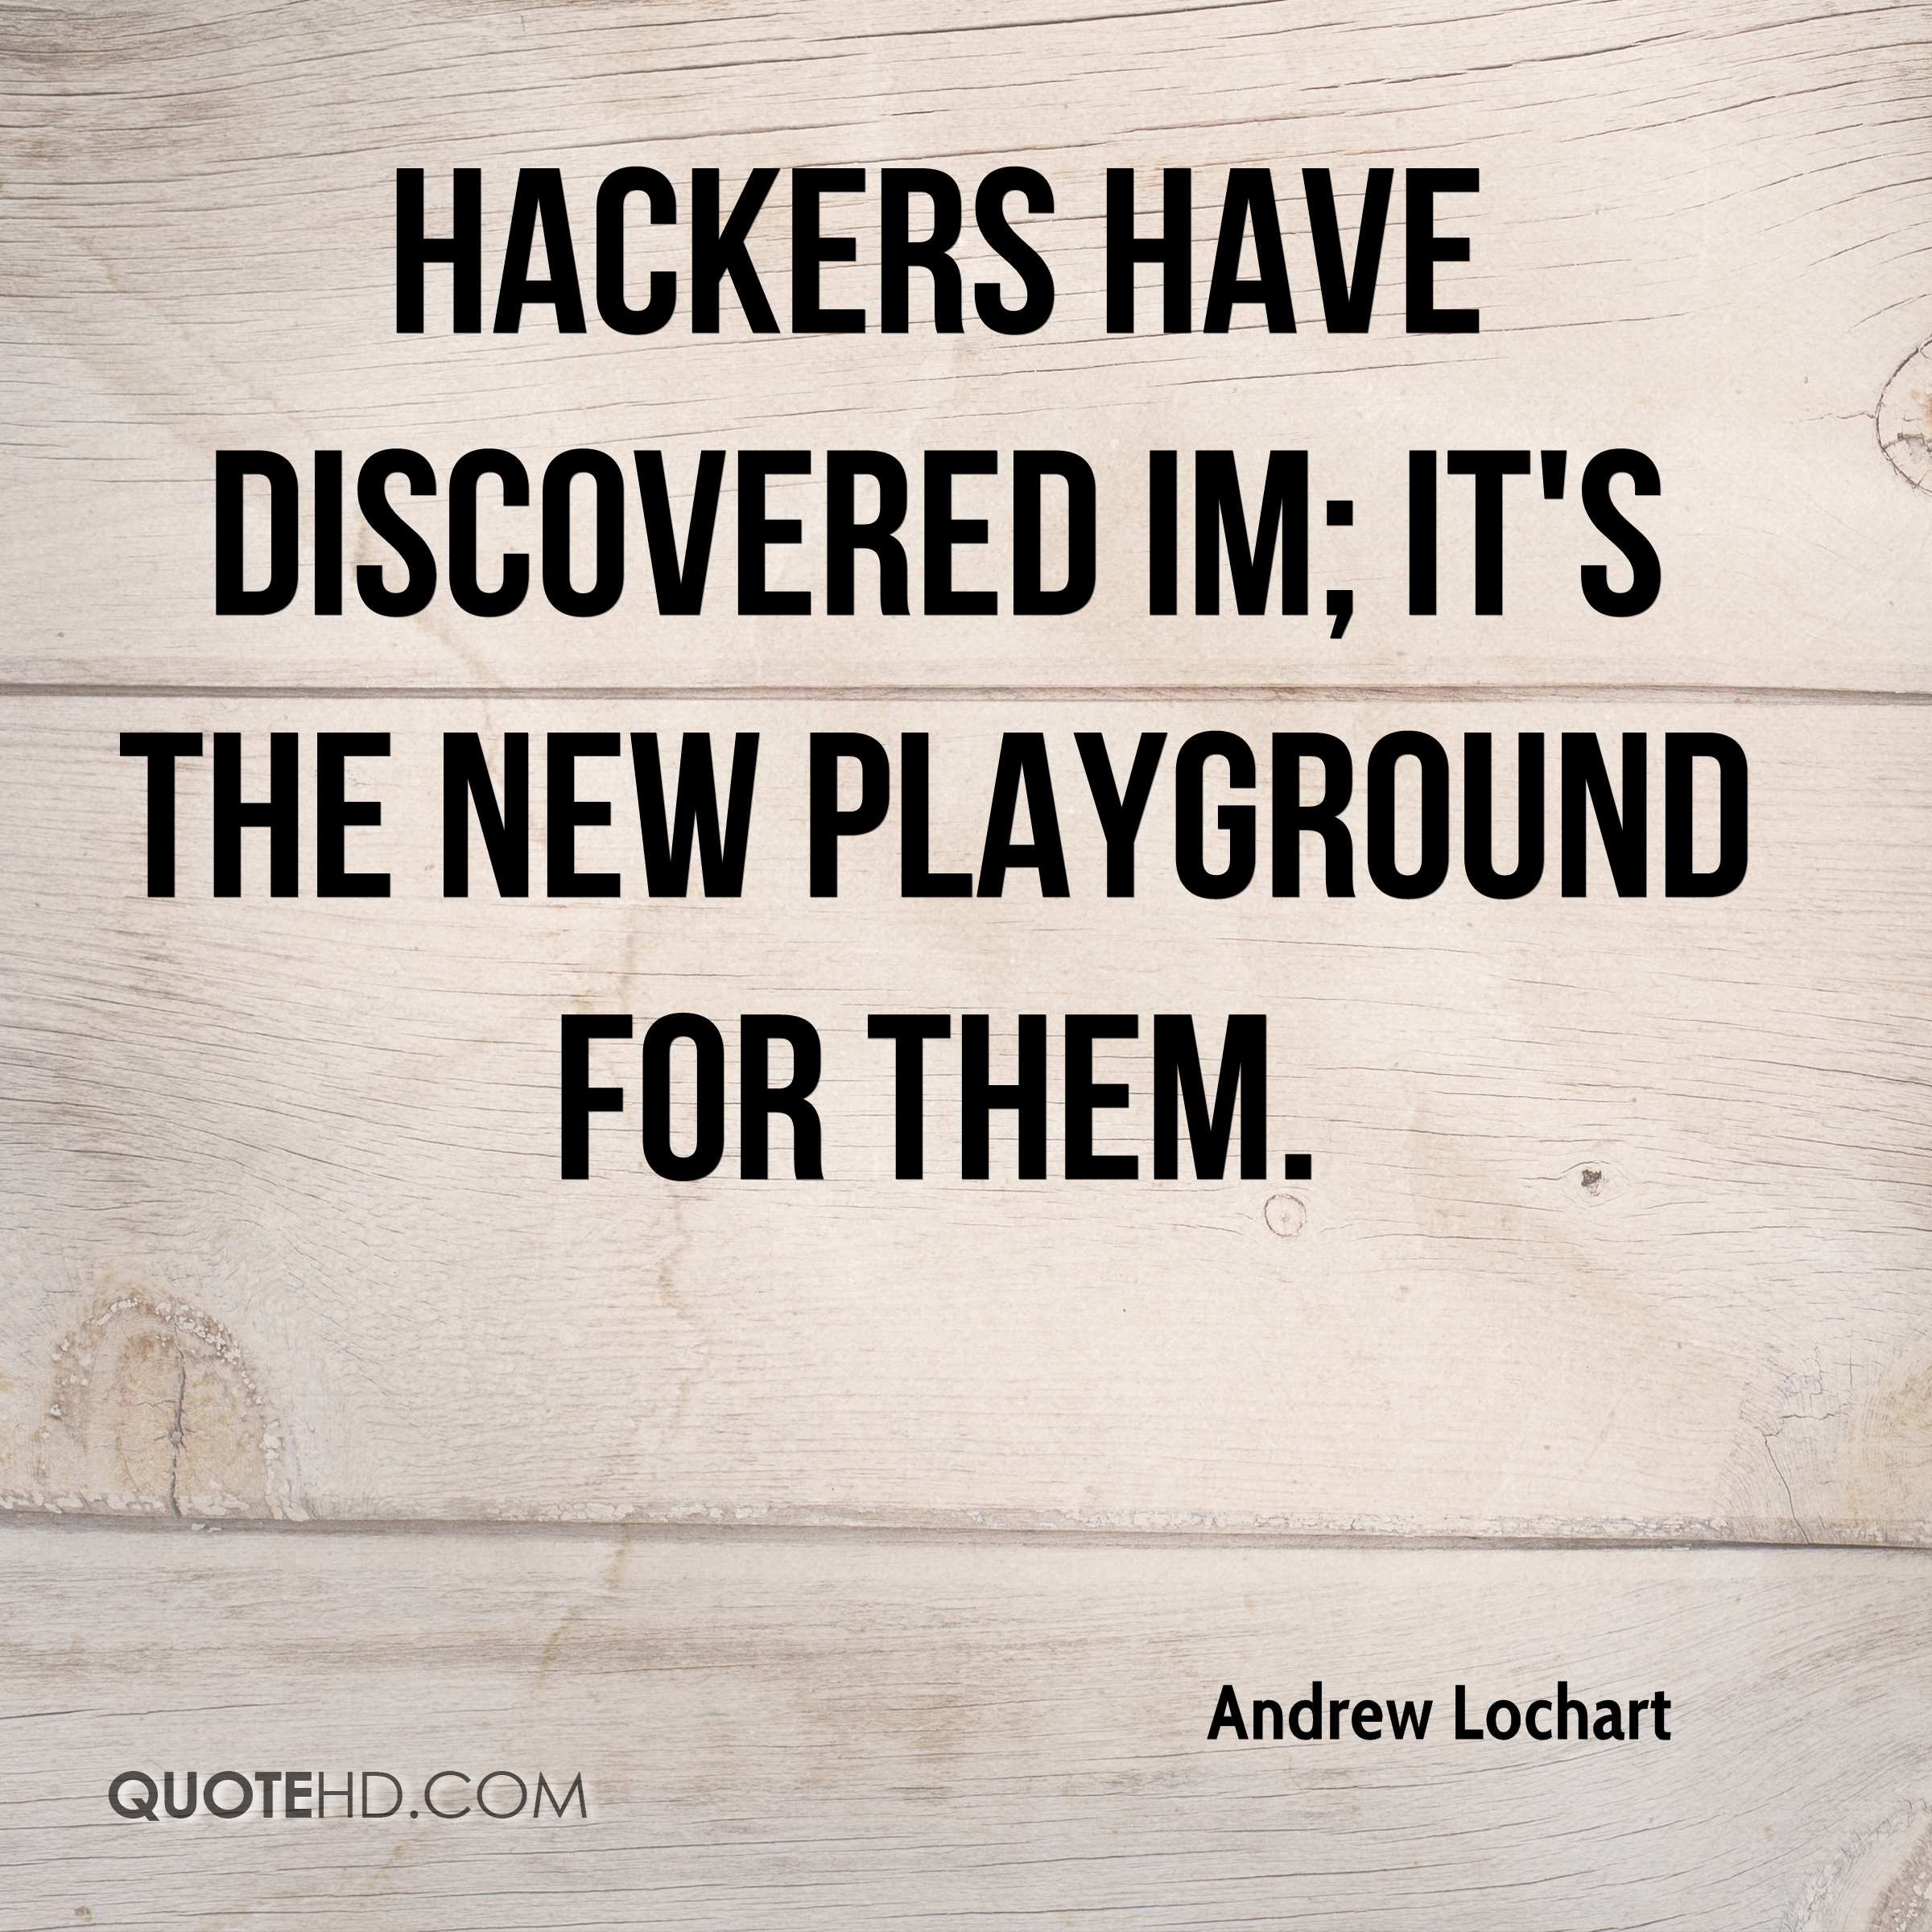 Hackers have discovered IM; it's the new playground for them.